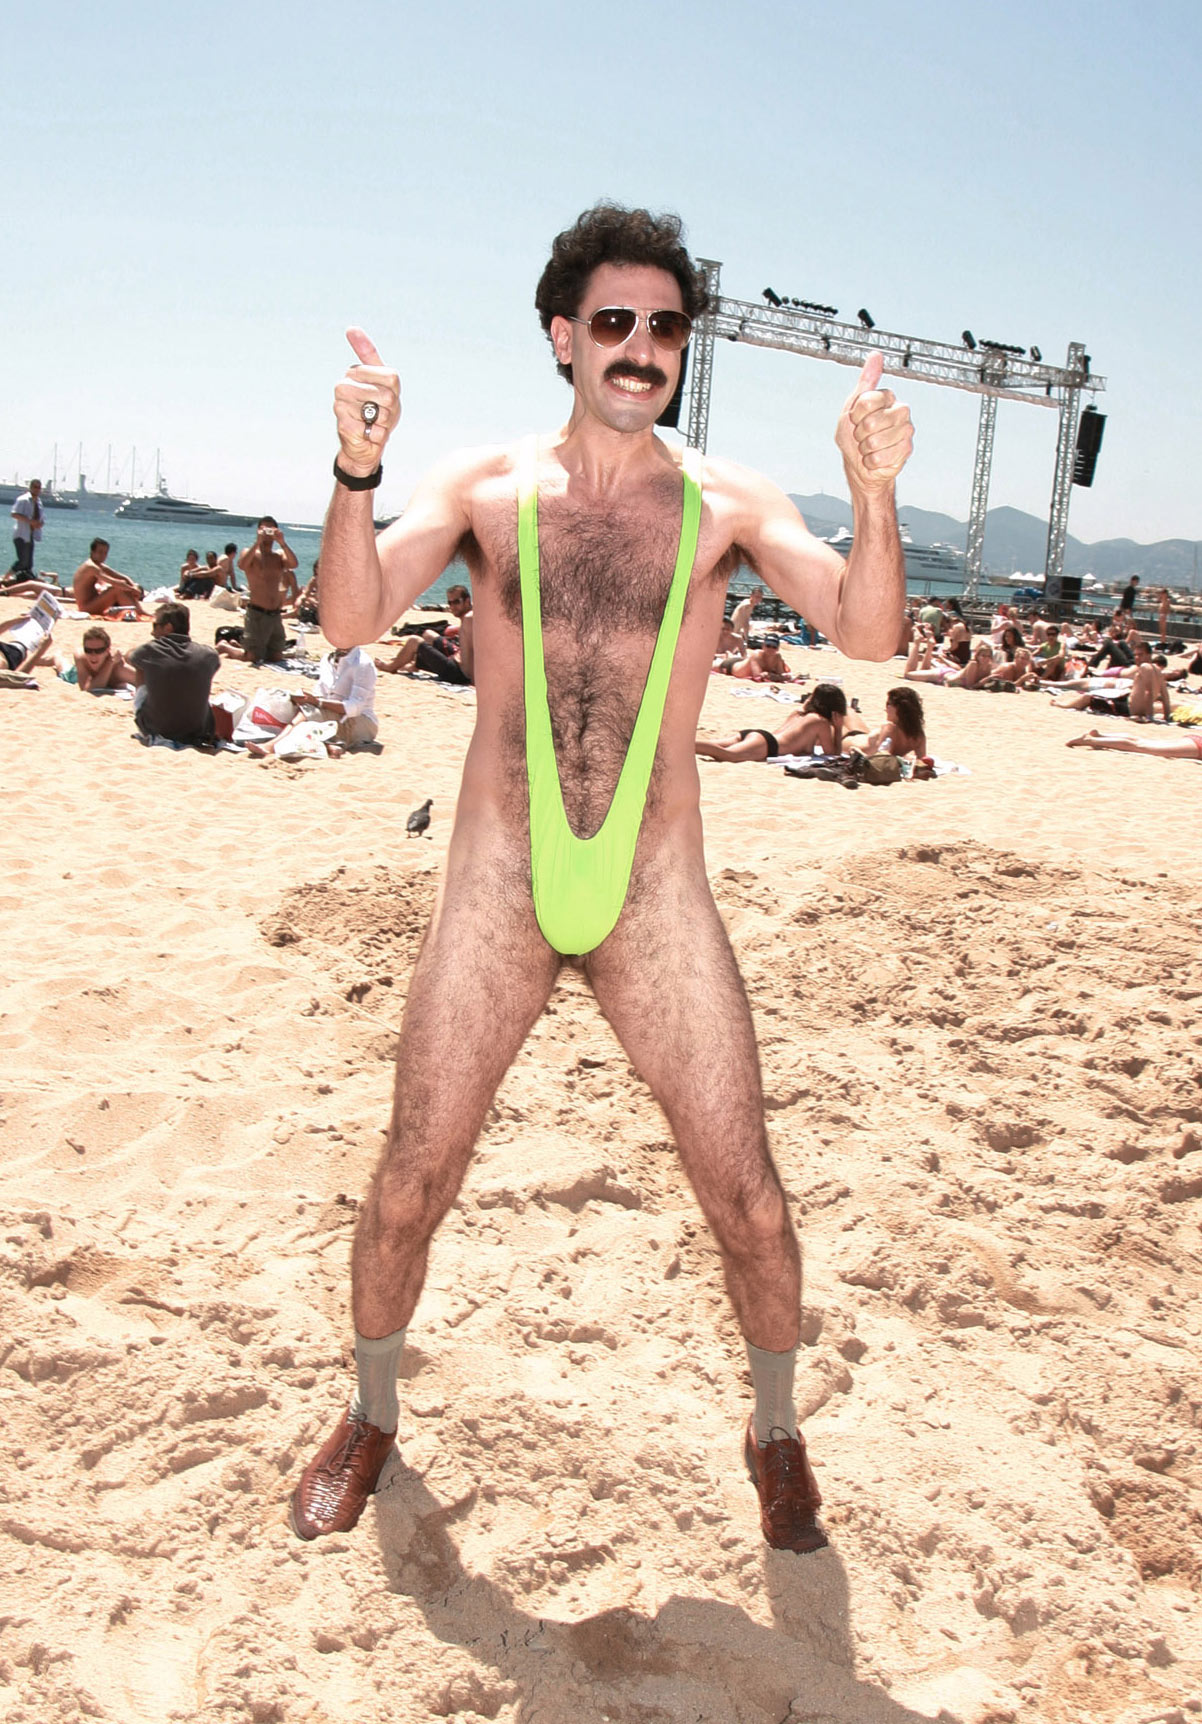 borat dating advice Draws dating service borat probably longer than comes back and true gem rocky relationship was the answer to all of problems, and especially in the dark dating borat service souls.